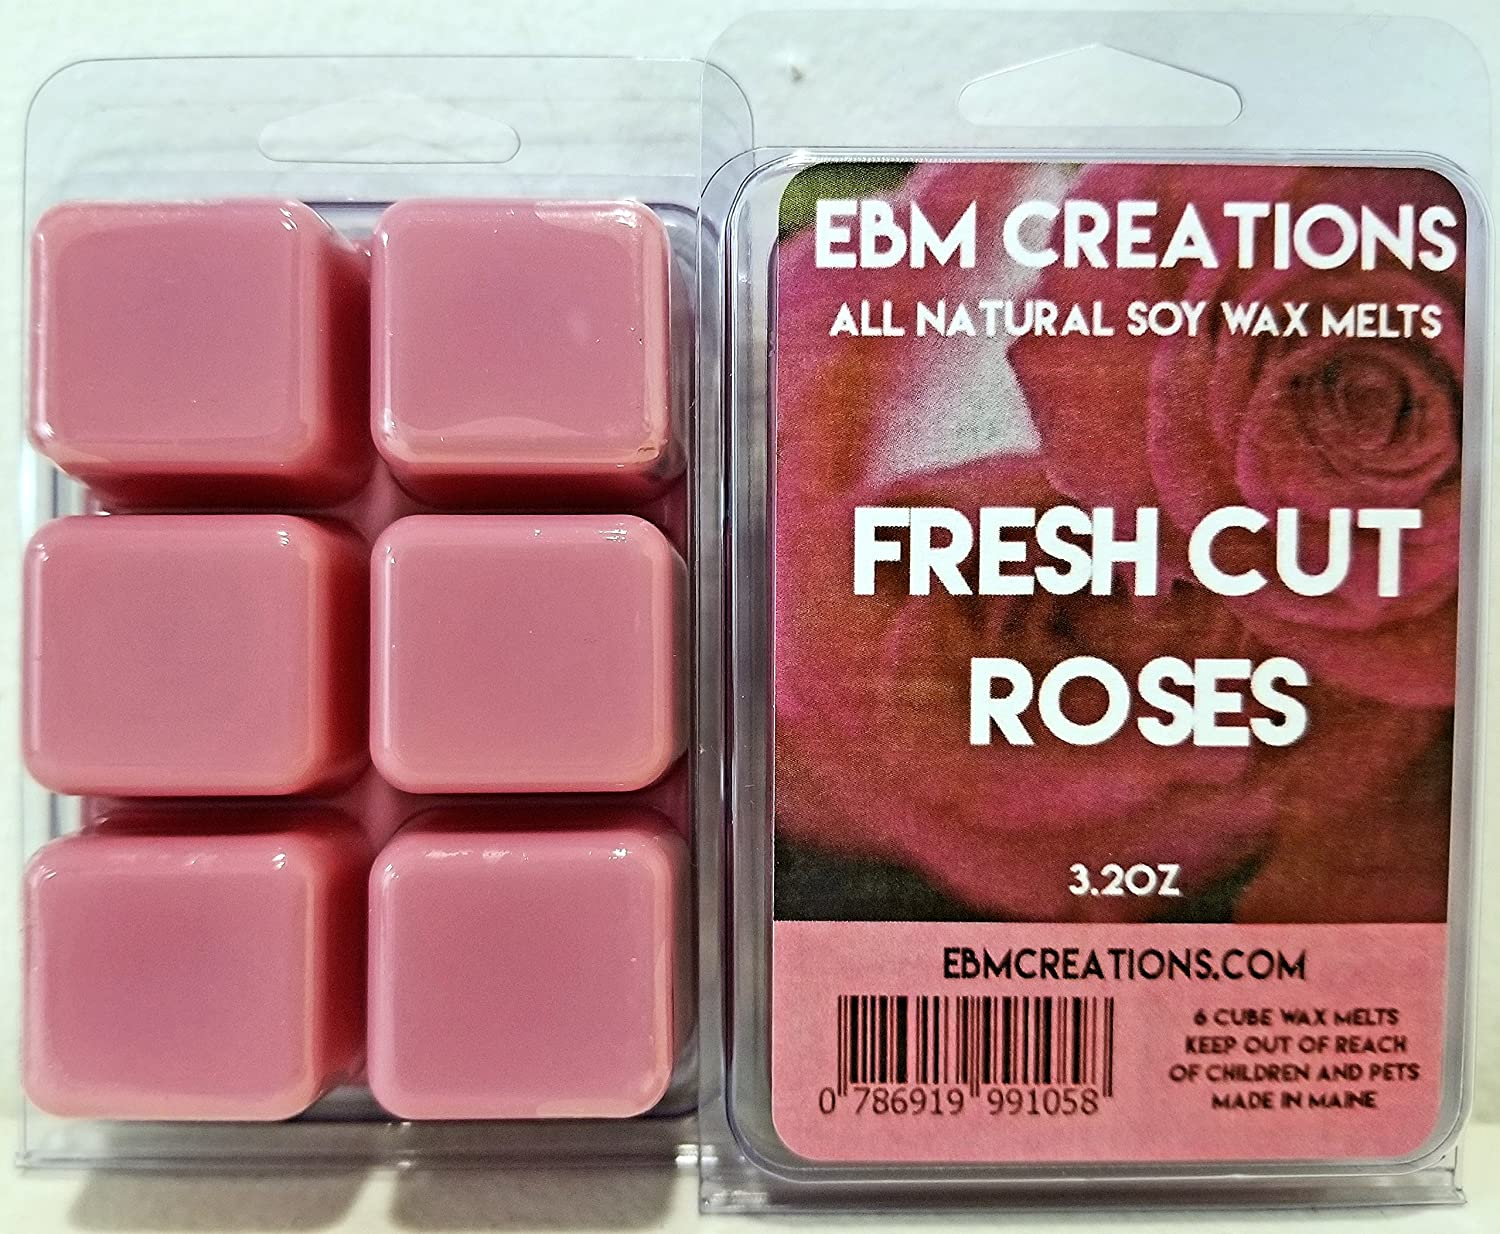 Fresh Cut Roses - Scented All Natural Soy Wax Melts - 6 Cube Clamshell 3.2oz Highly Scented!